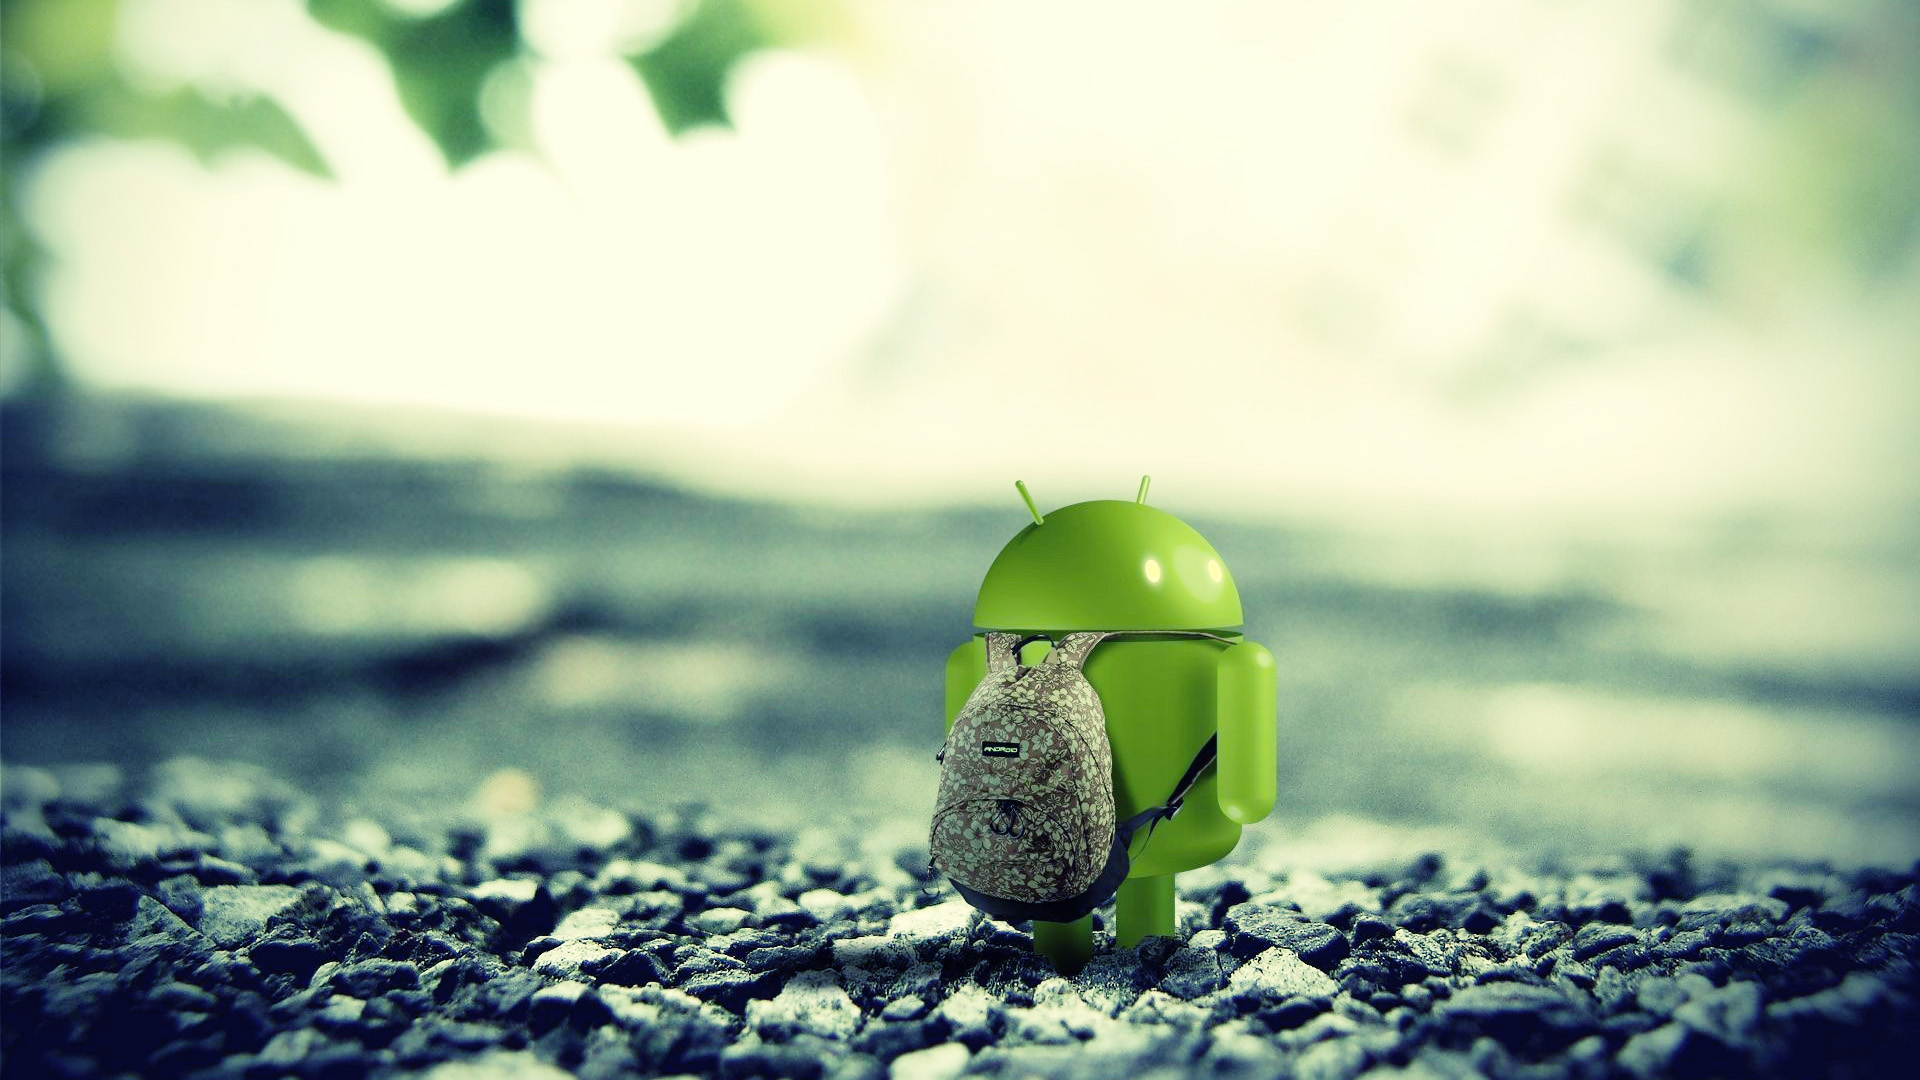 android logo wallpapers hd pixelstalk abstract android wallpapers hd cell wall pinterest 1920x1080